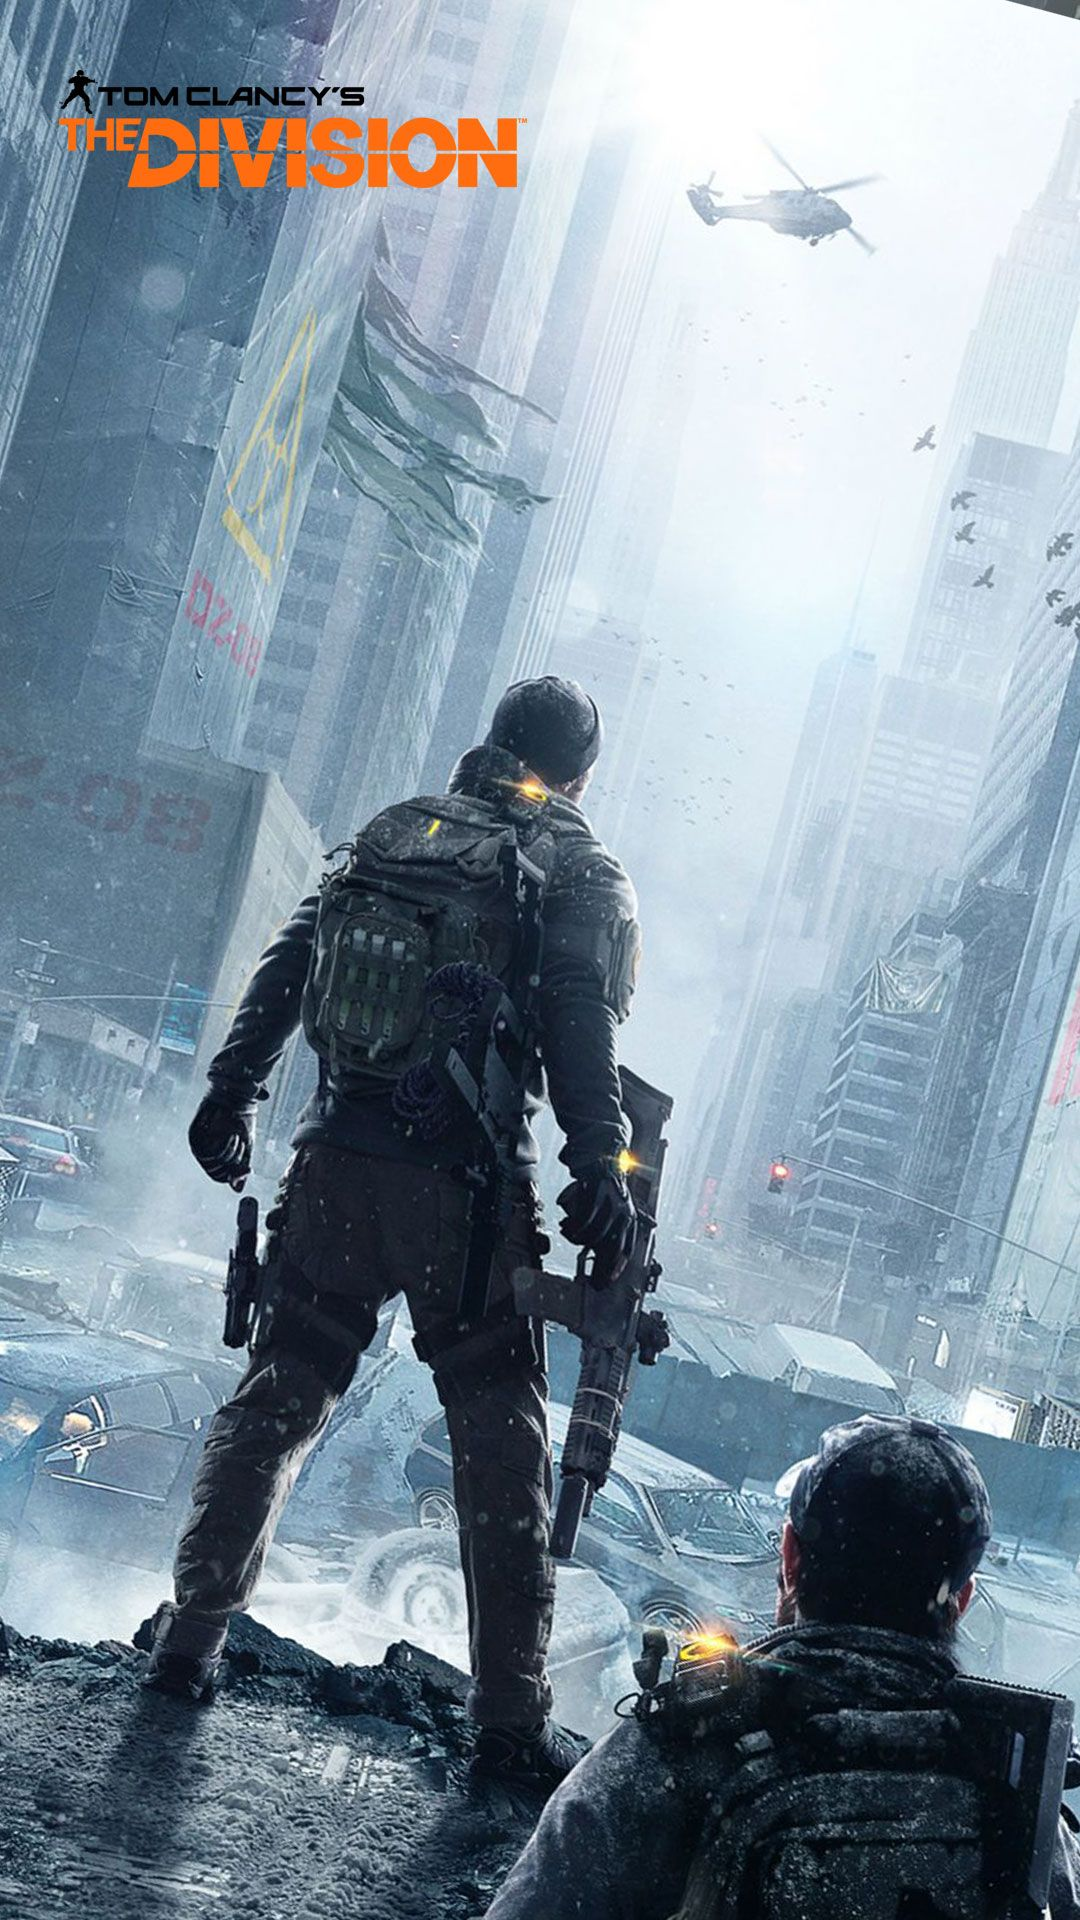 The Division Wallpaper Iphone 6 Plus Game Wallpaper Iphone